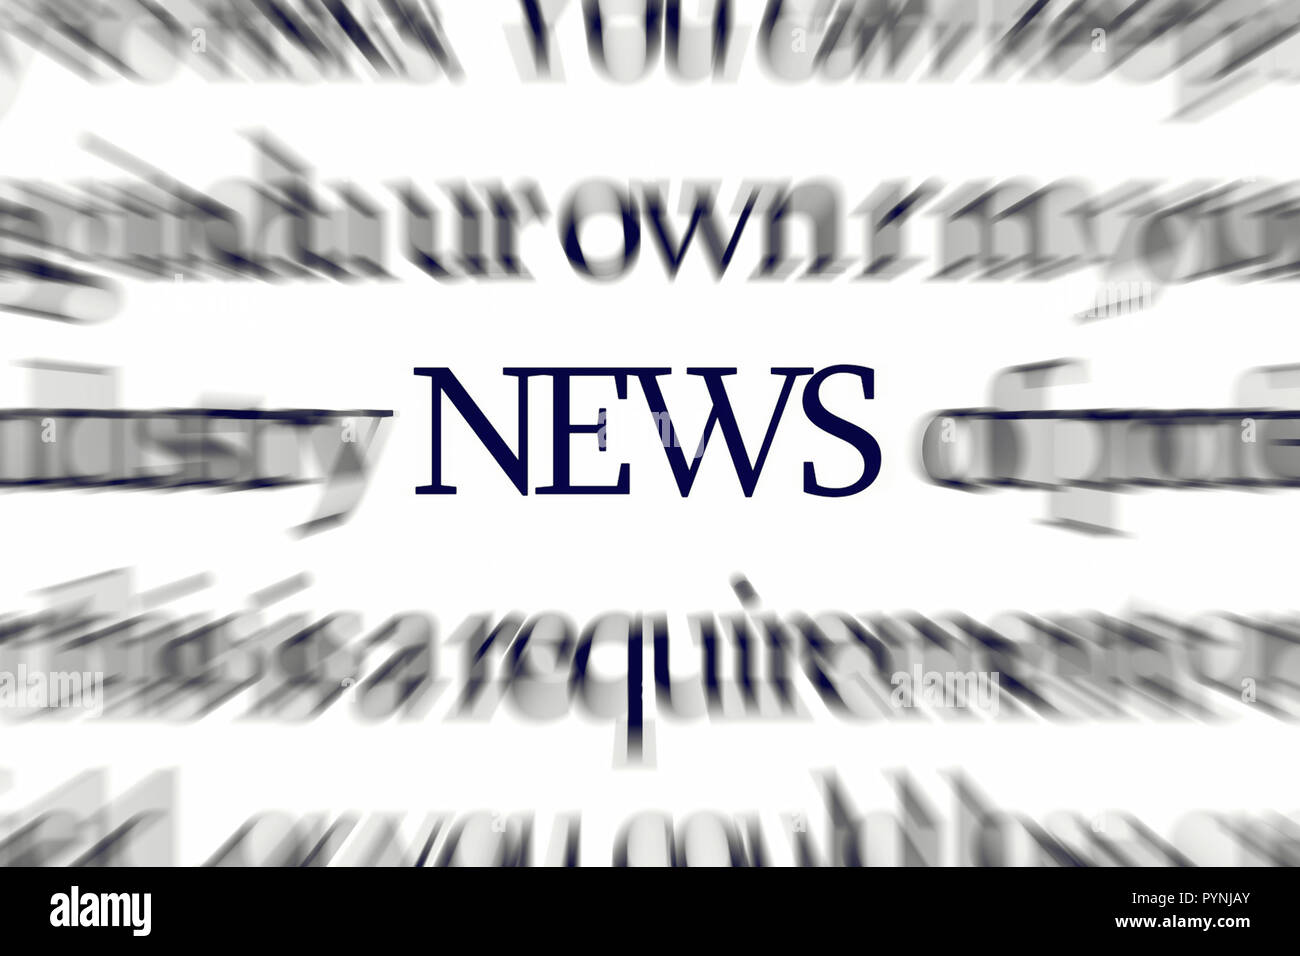 The word NEWS with dynamic blur attracting attention - Stock Image